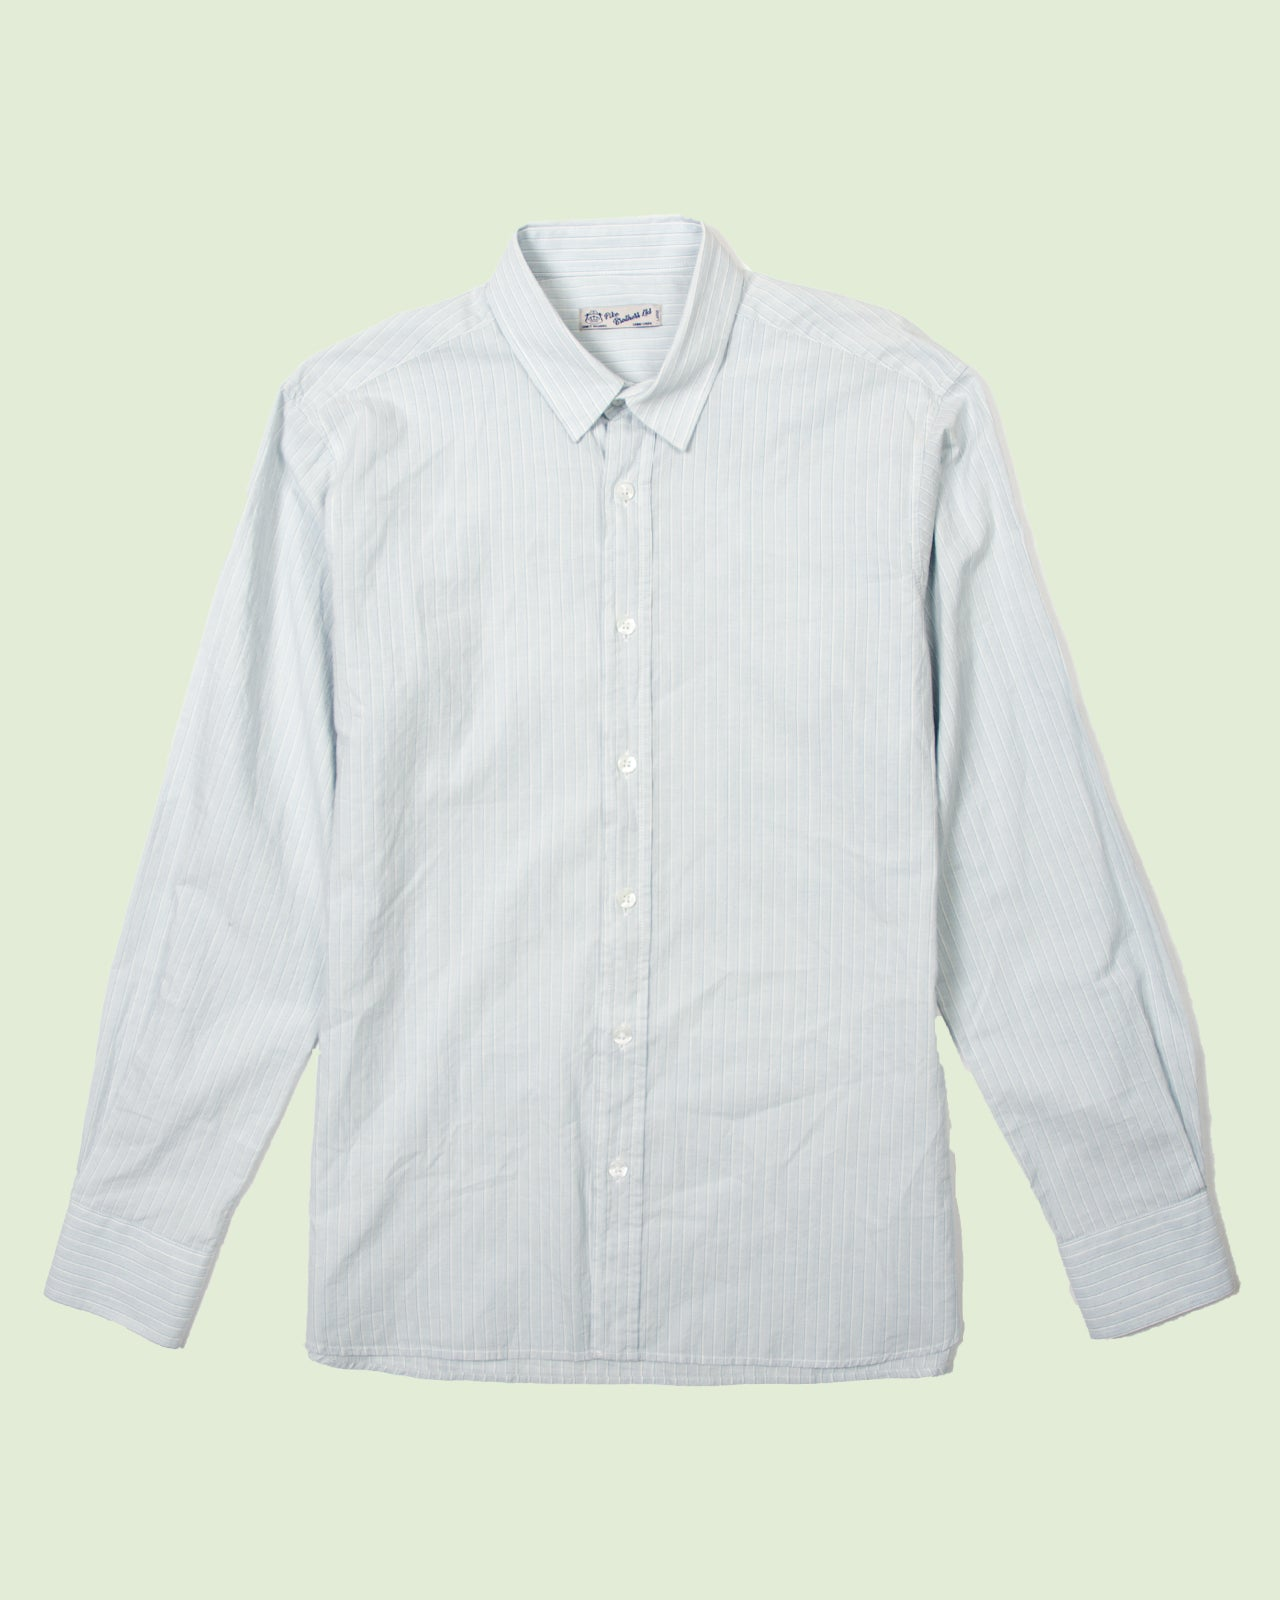 1947 Salesman Shirt Brooklyn Blue